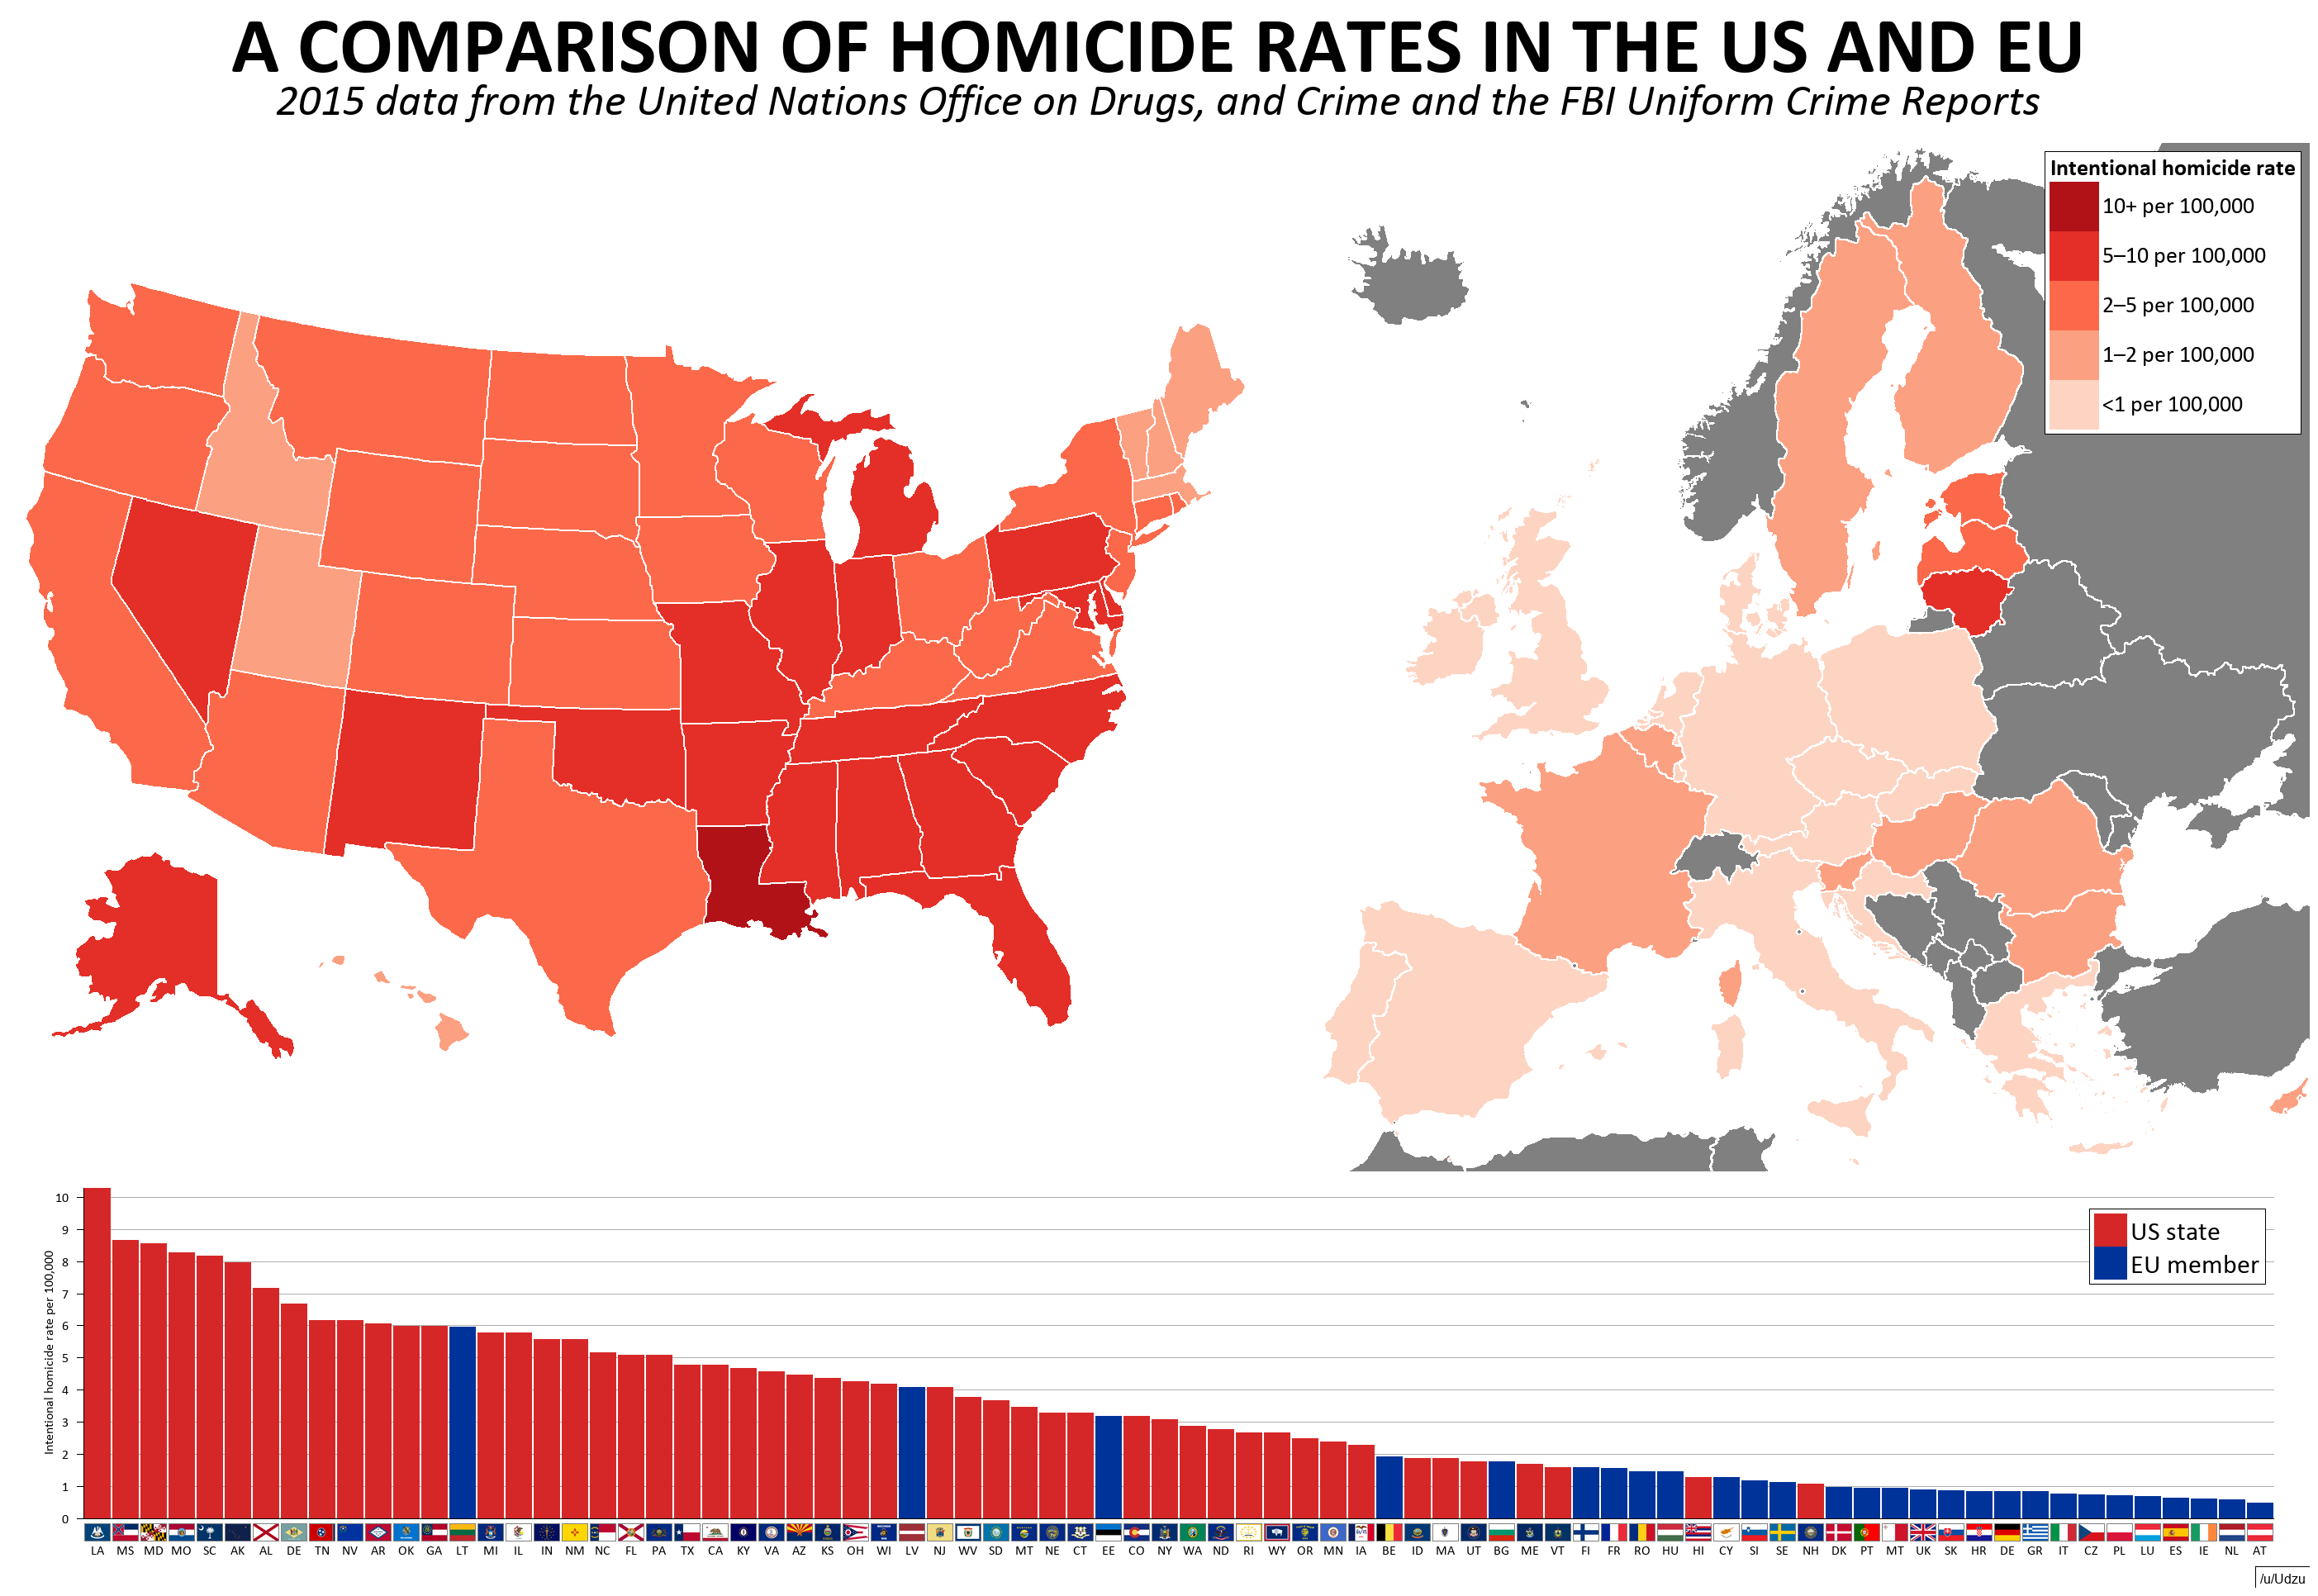 Map of comparison of homicide rates in the US and Europe